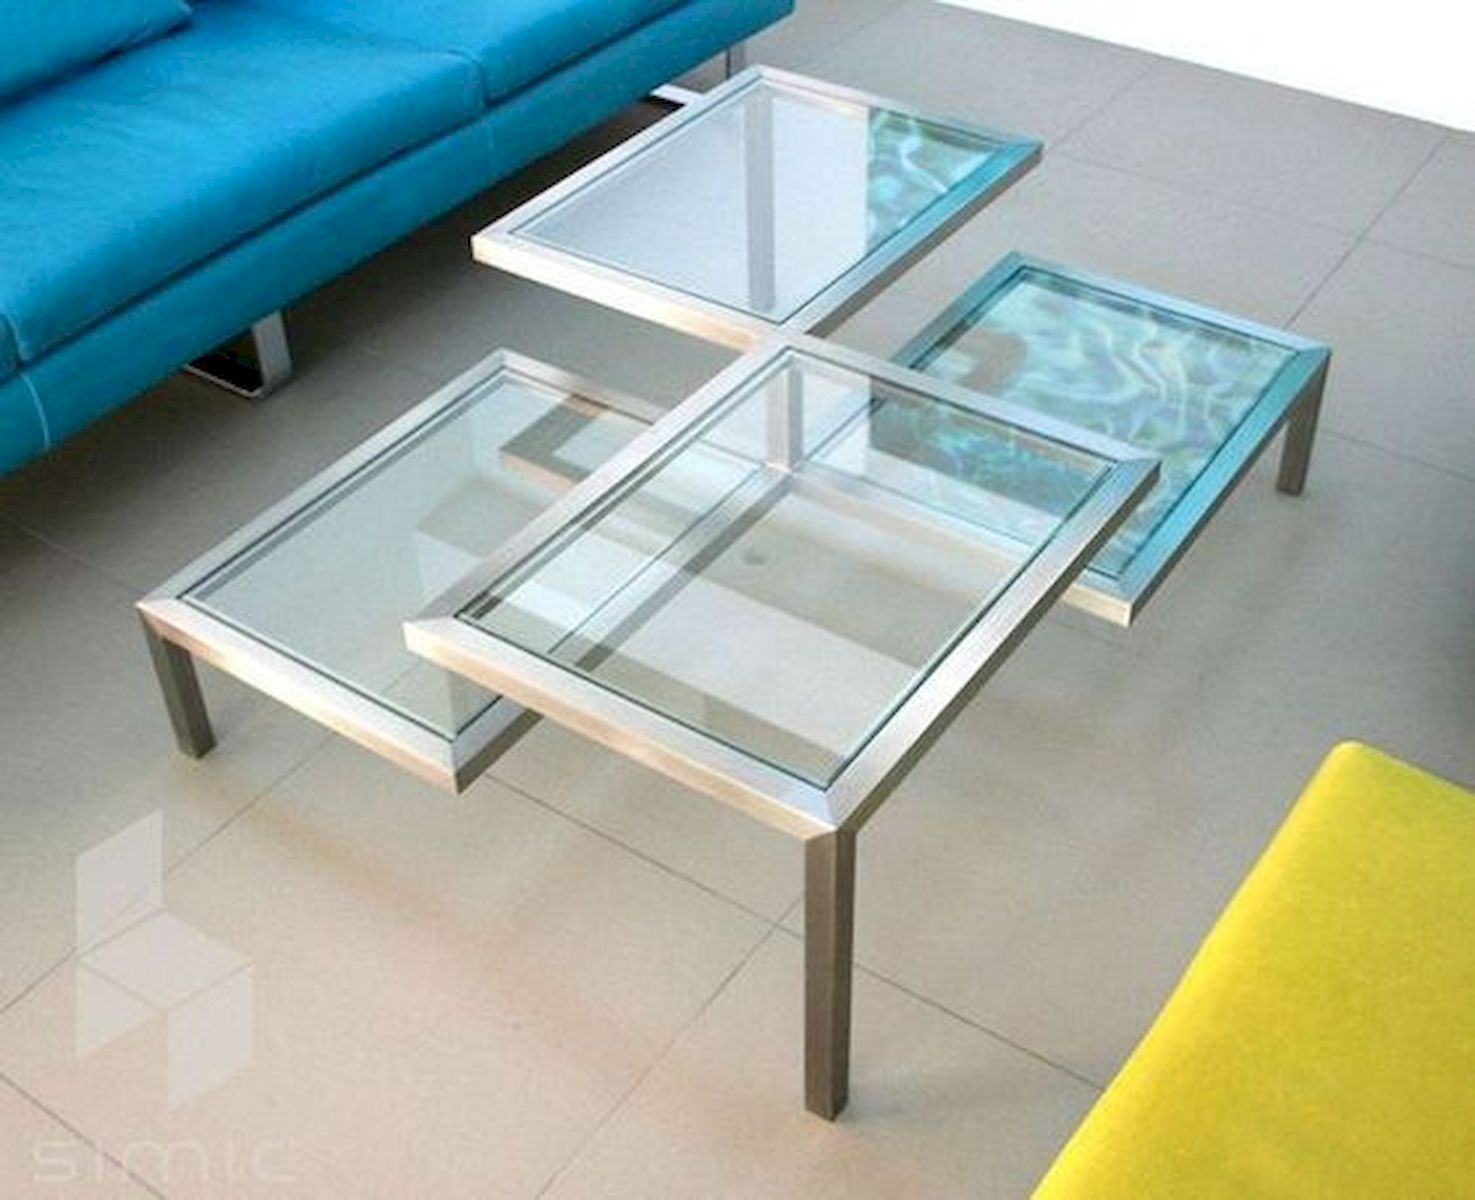 40 Awesome Modern Glass Coffee Table Design Ideas For Your Living Room (19)